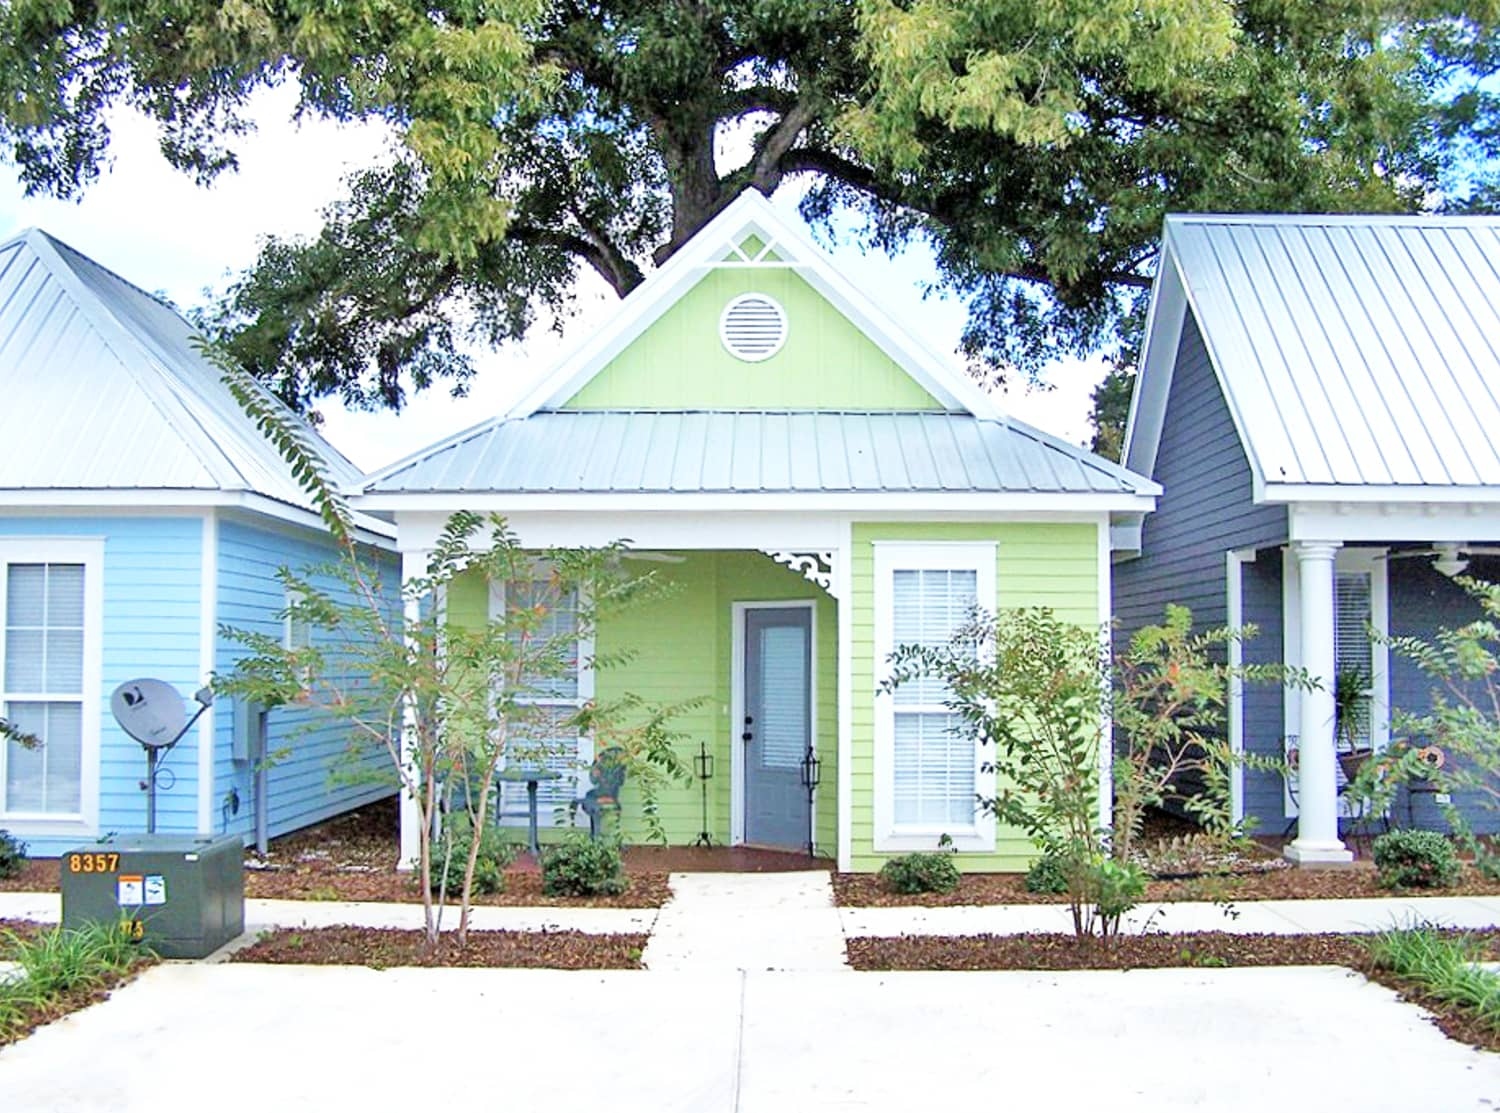 These Tiny Alabama Homes Rent for Less than $500 a Month